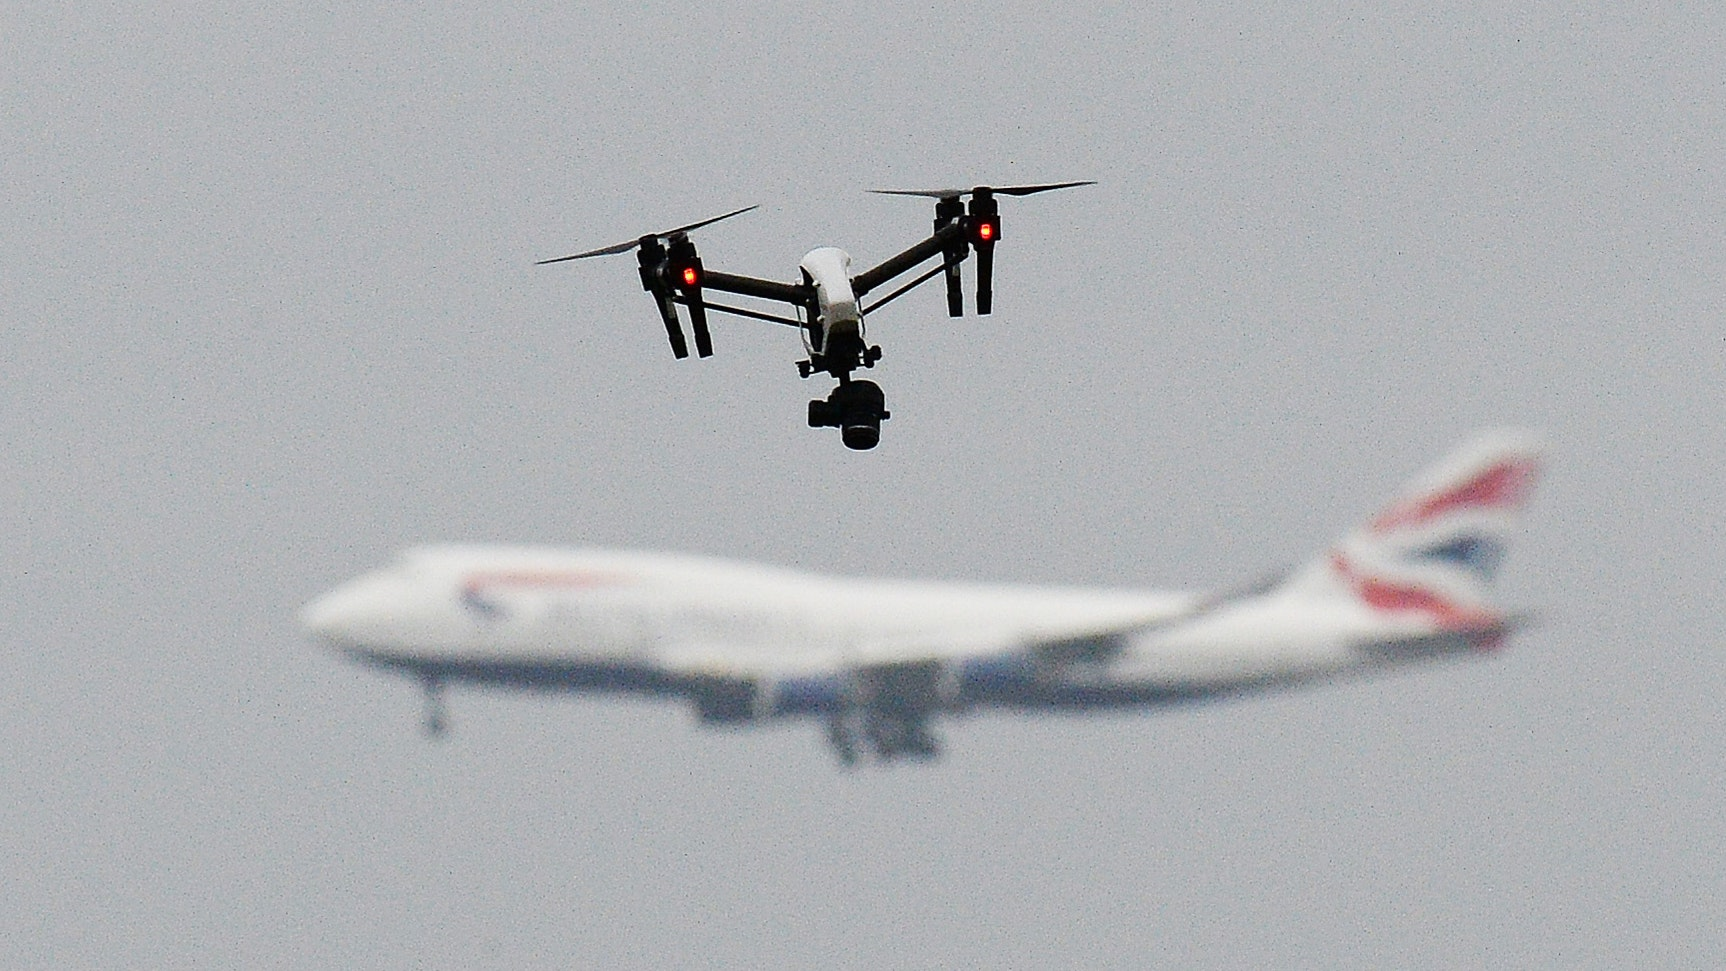 London Heathrow airport: Drone spotted as flights grounded